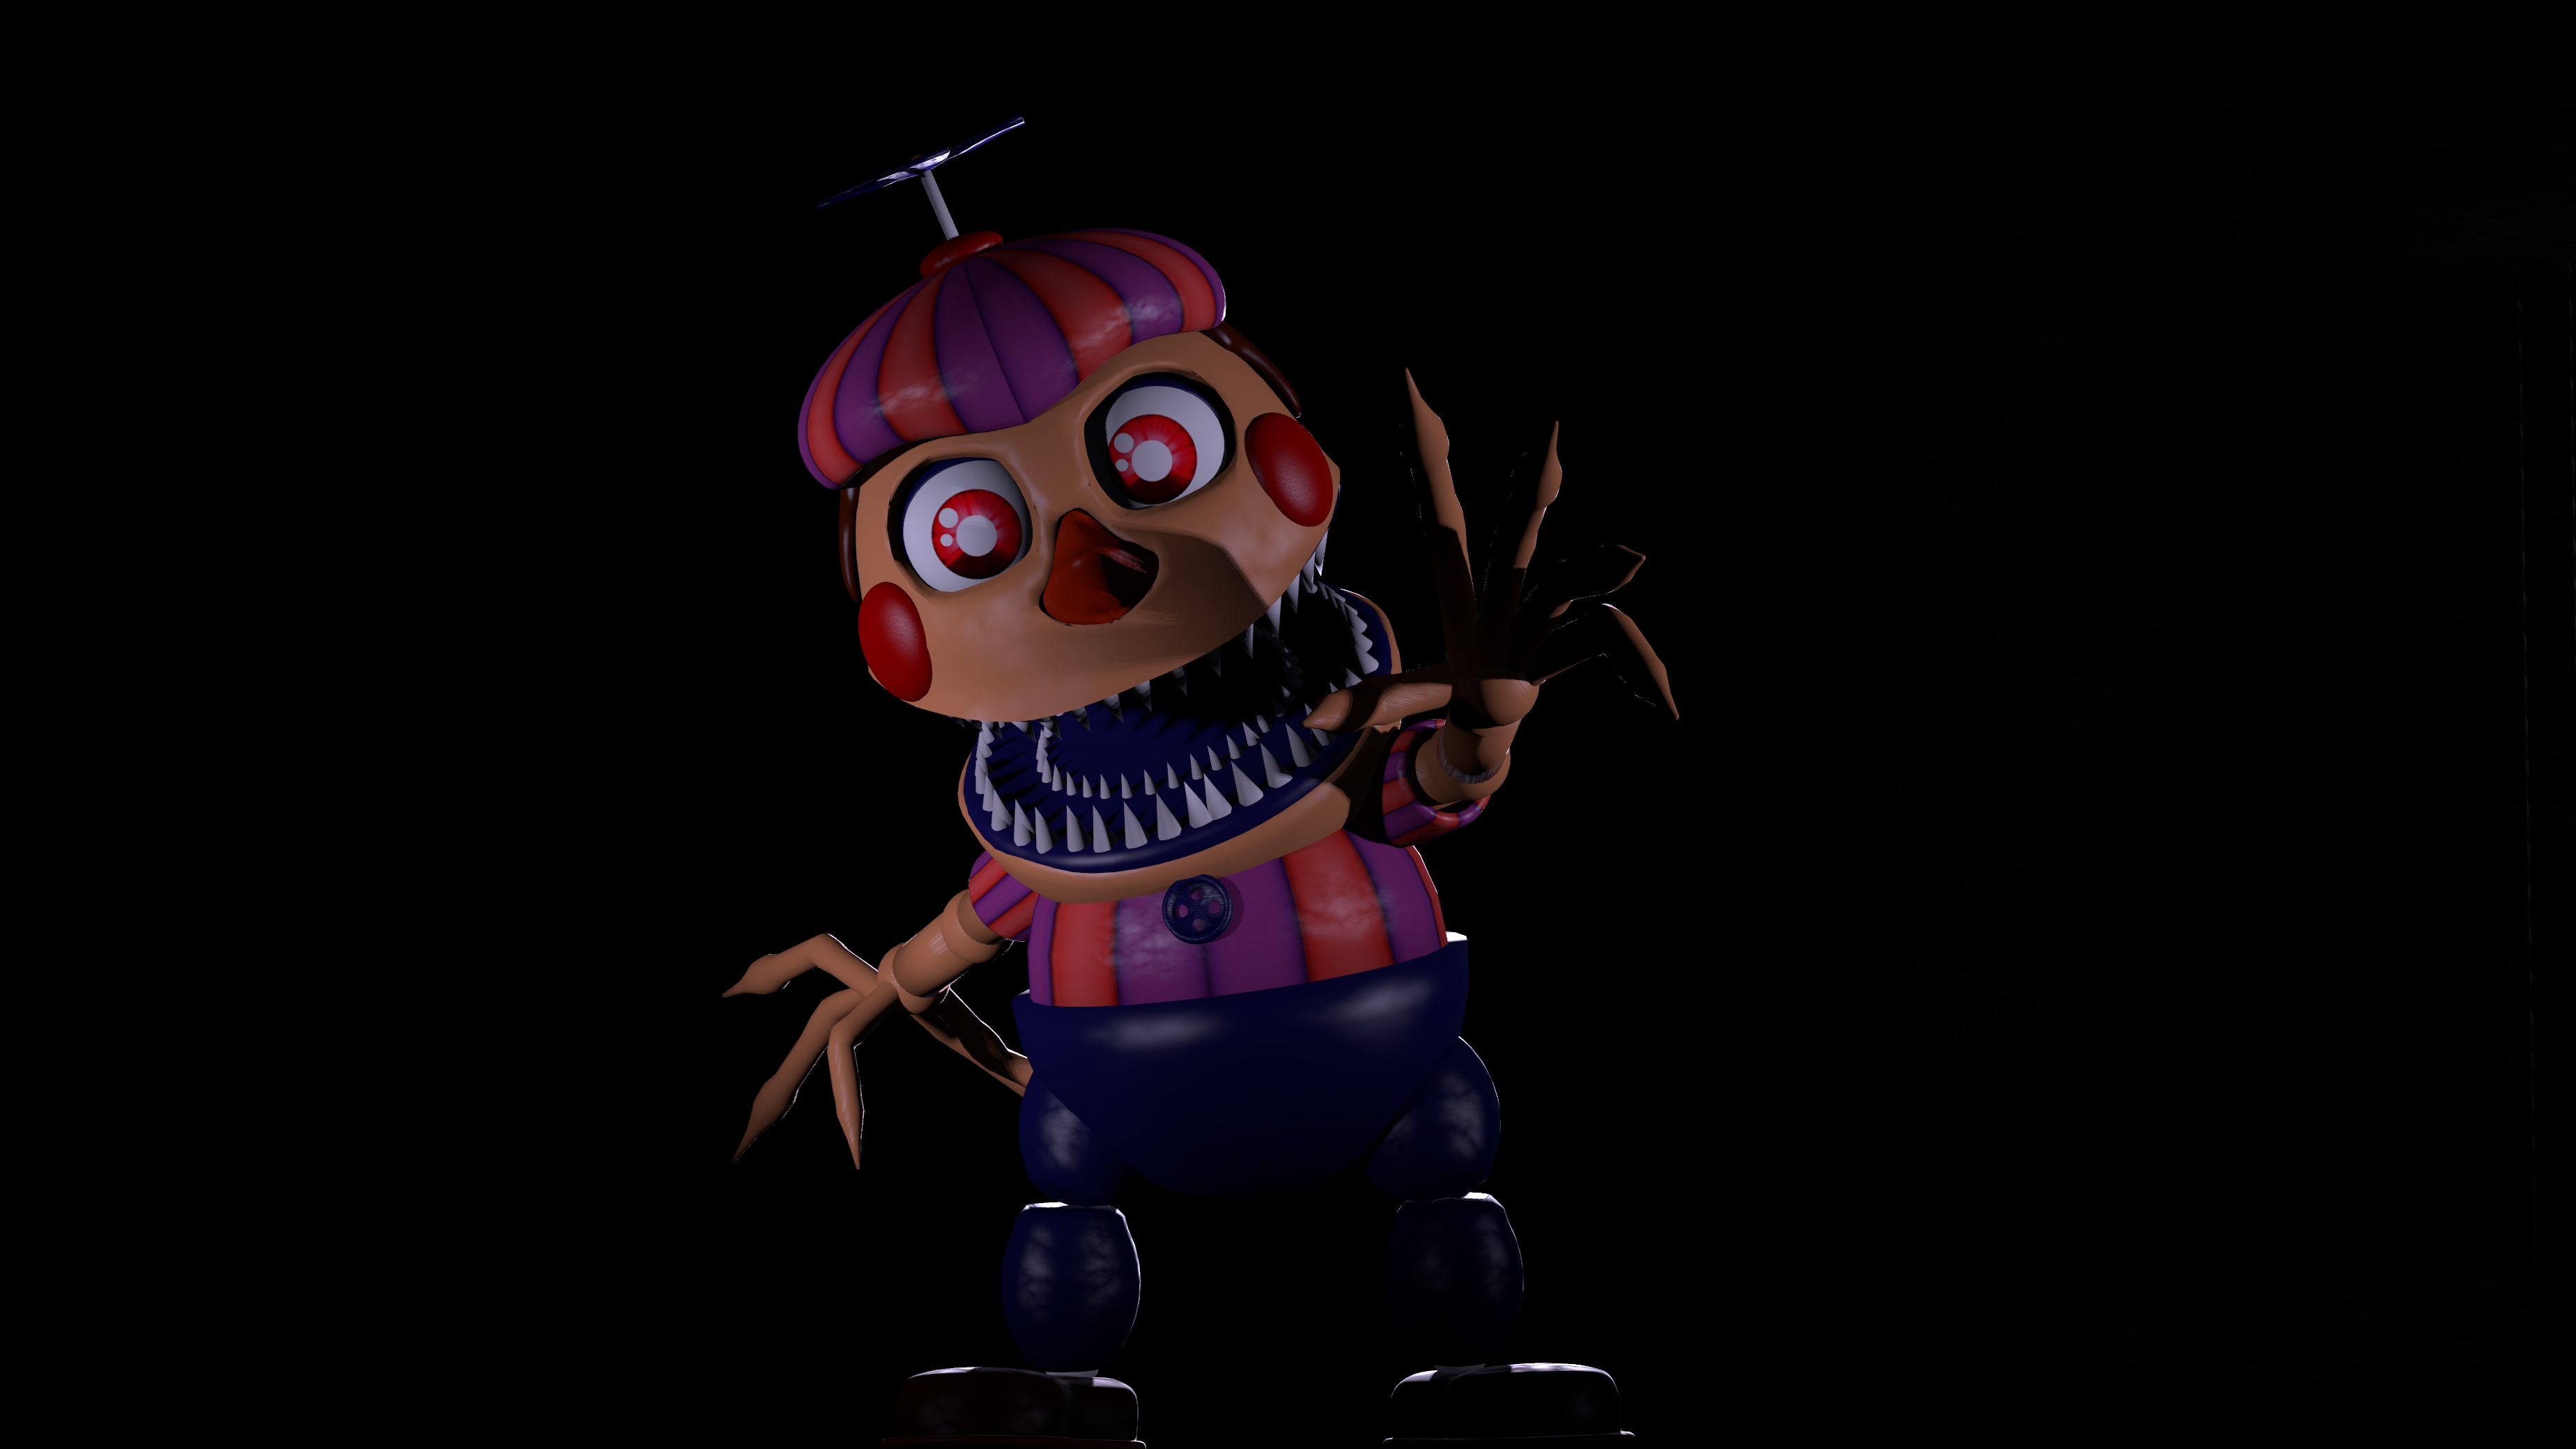 717481007_preview_716912106_preview_Nightmare BalloonBoy